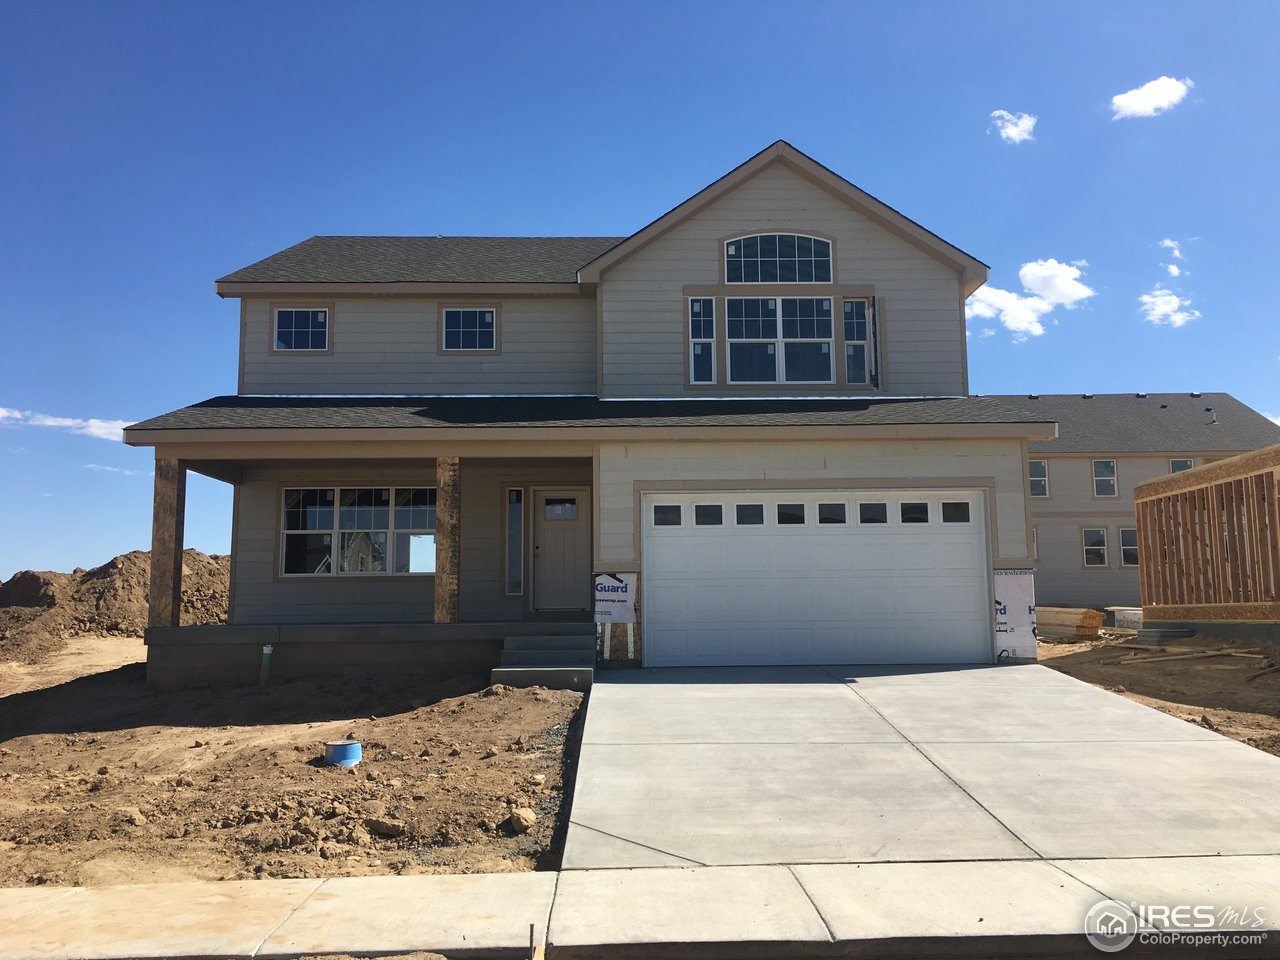 8734 16th St, Greeley CO 80634